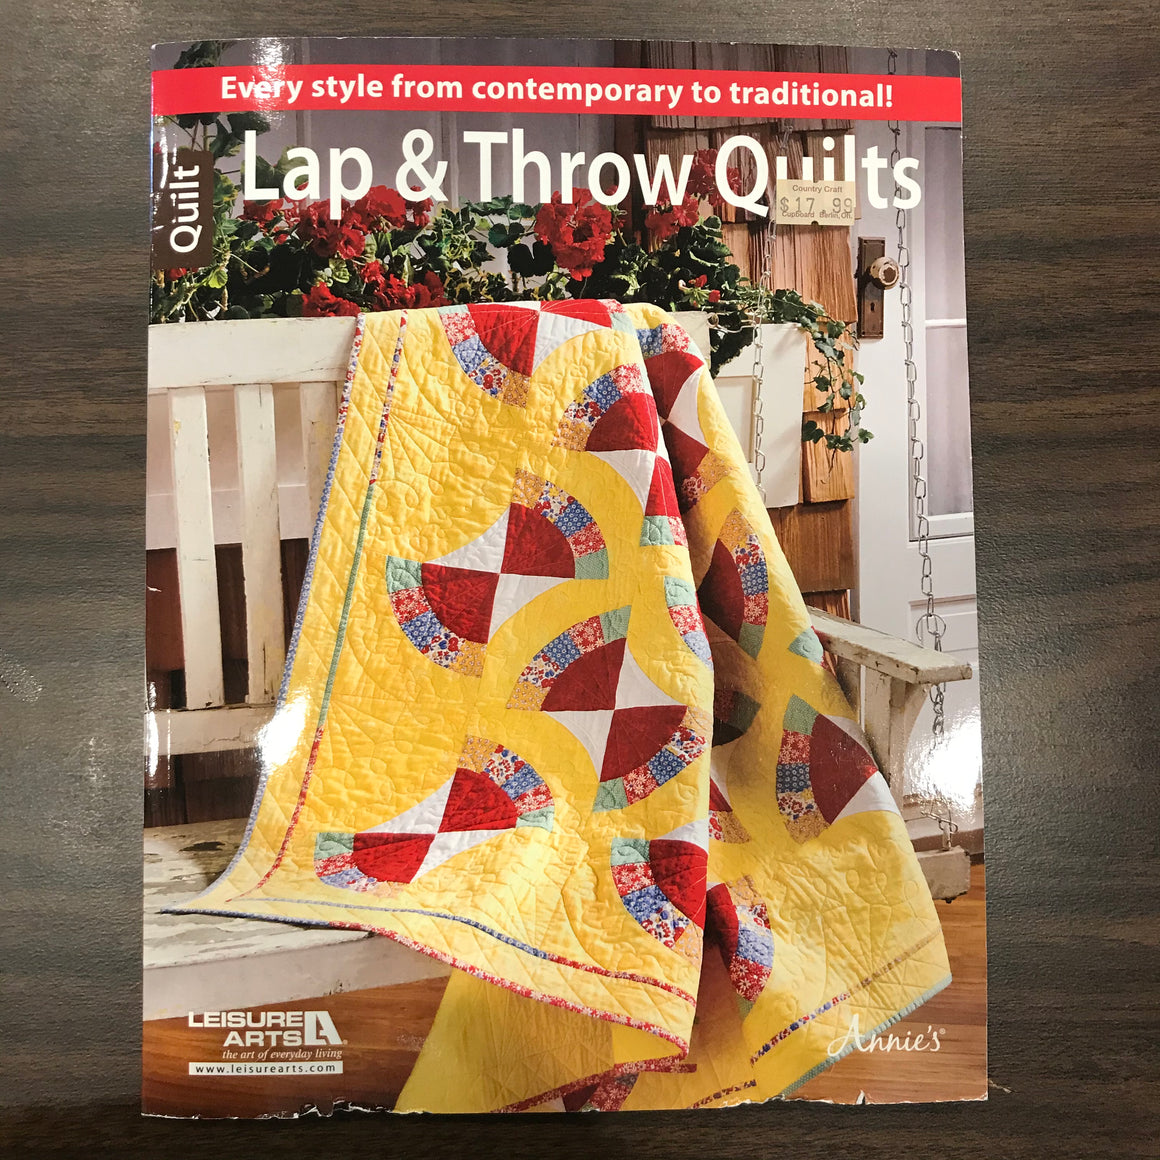 Lap & Throw Quilts